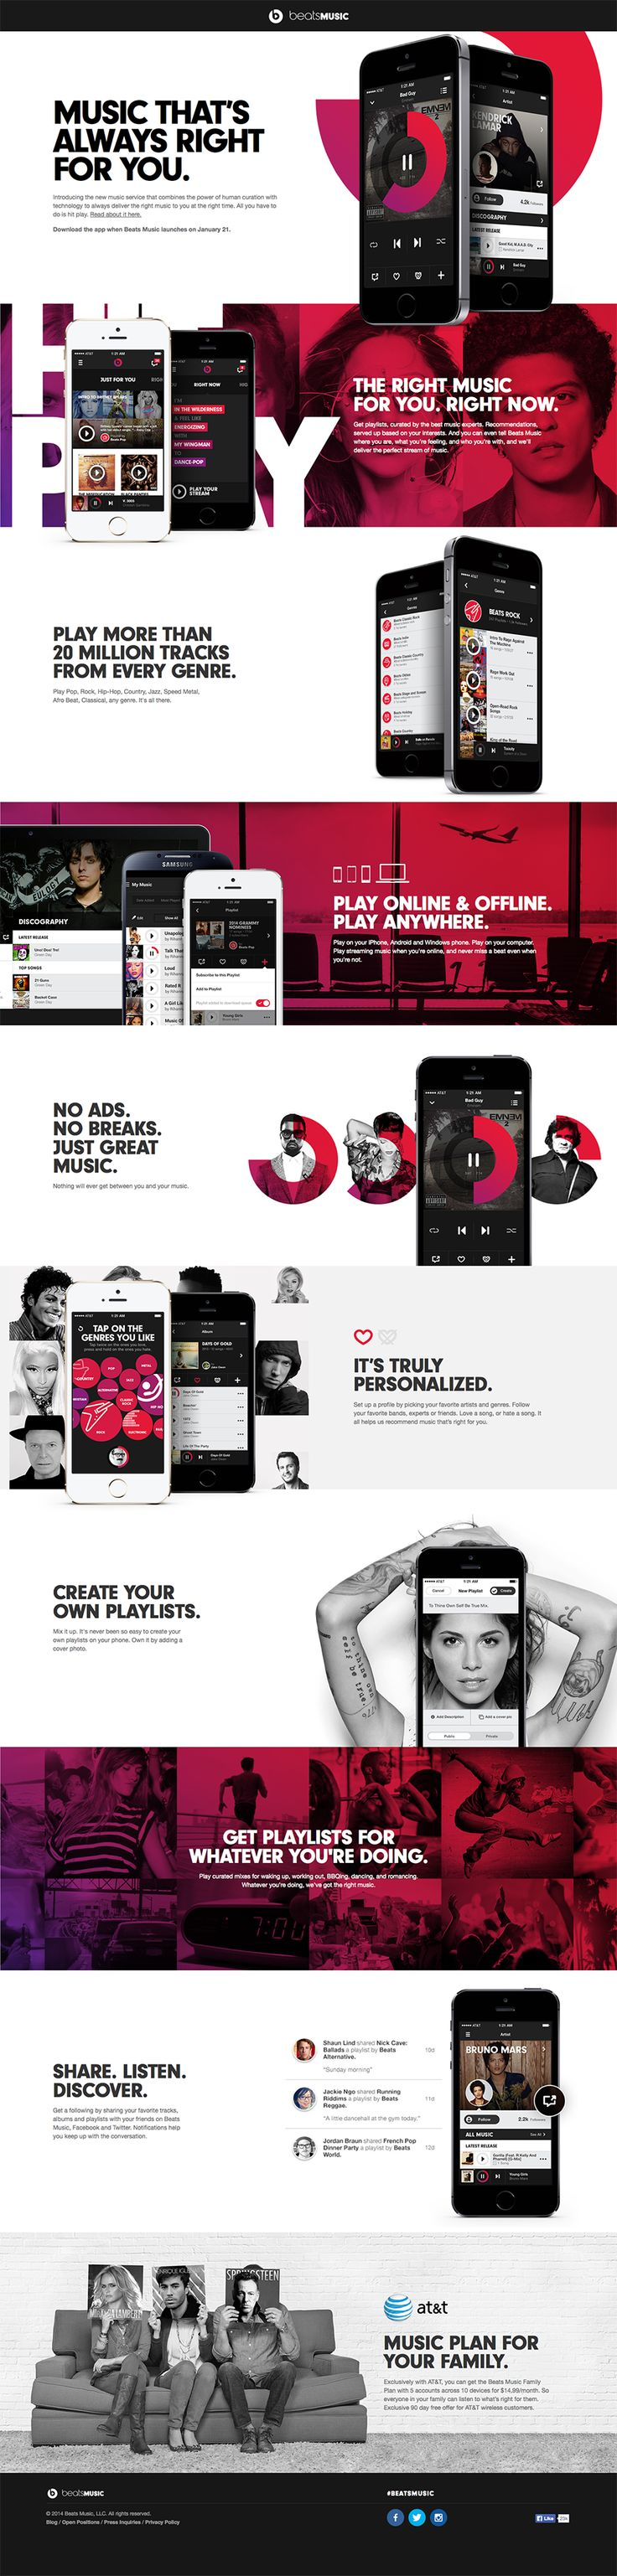 Cool Web Design, beatsmusic. http://www.pinterest.com/alfredchong/] more on http://themeforest.net/?ref=Vision7Studio